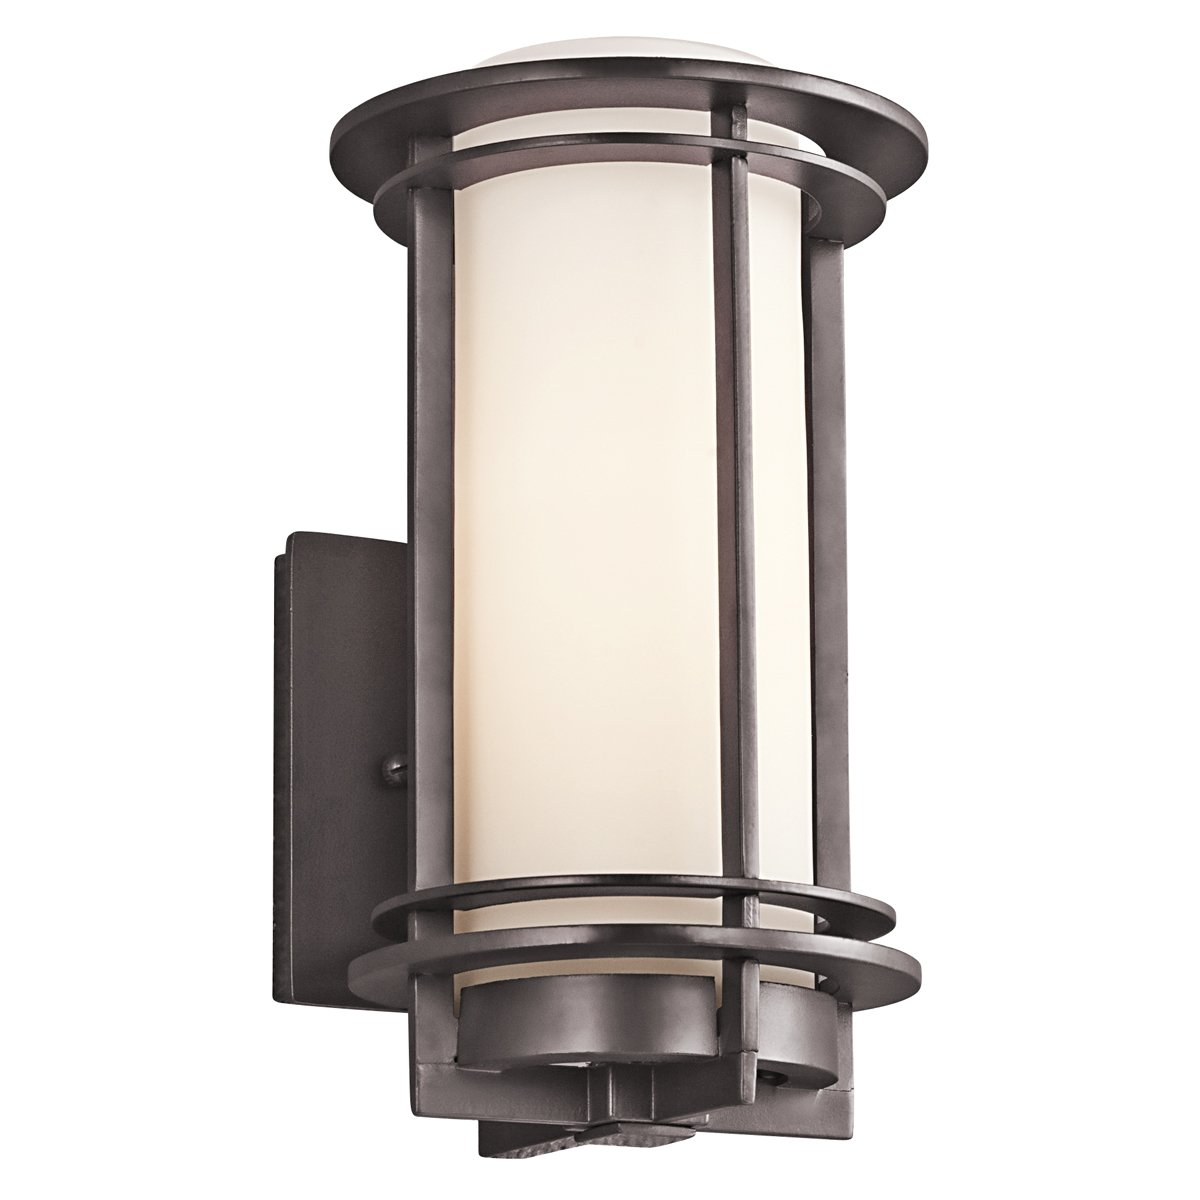 Kichler 49344az one light outdoor wall mount wall sconces kichler 49344az one light outdoor wall mount wall sconces amazon amipublicfo Choice Image